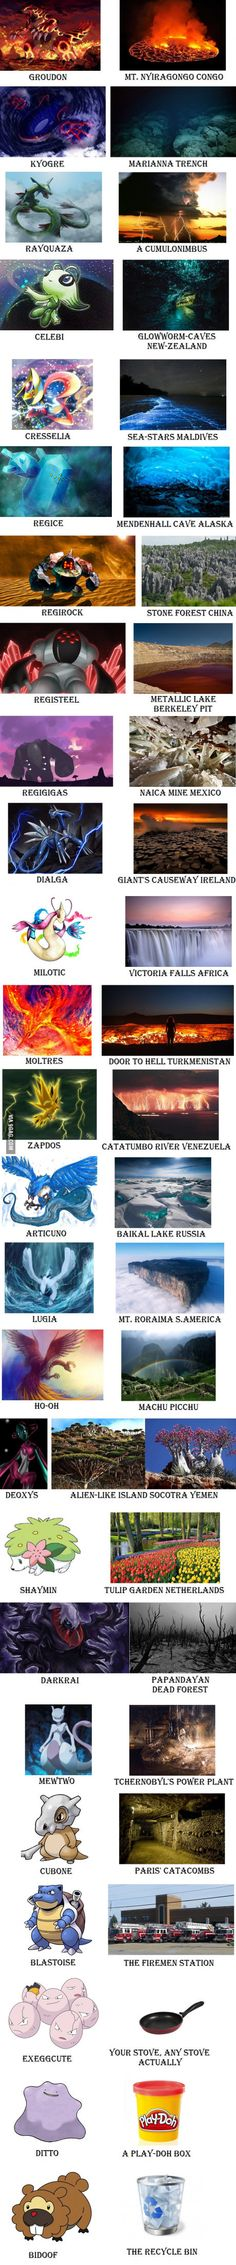 Appropriate Earth locations for pokemons at first... Then we go down..